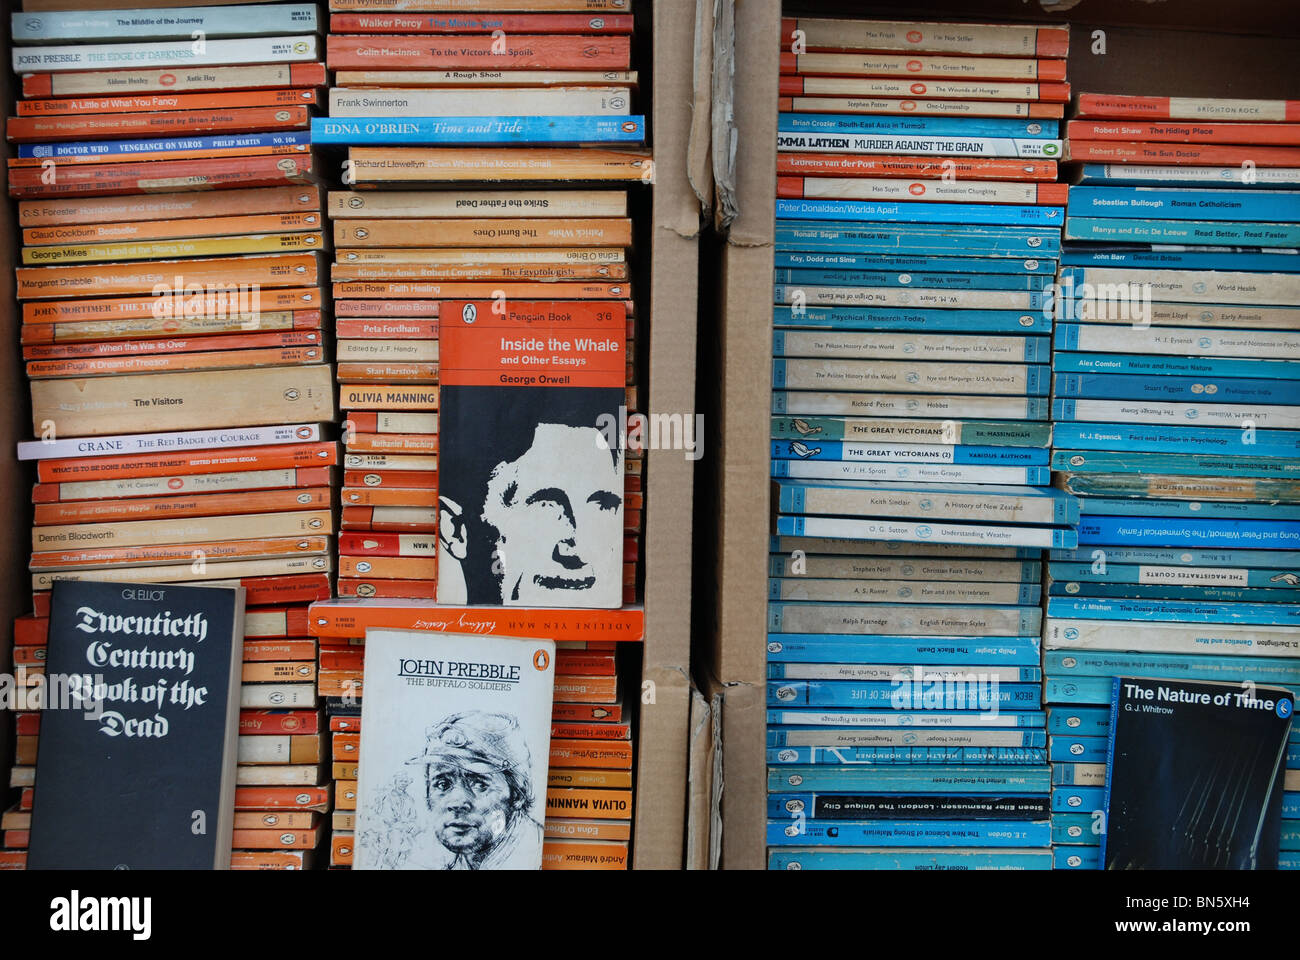 Penguin and Pelican paperbacks at a secondhand bookshop in Edinburgh. - Stock Image